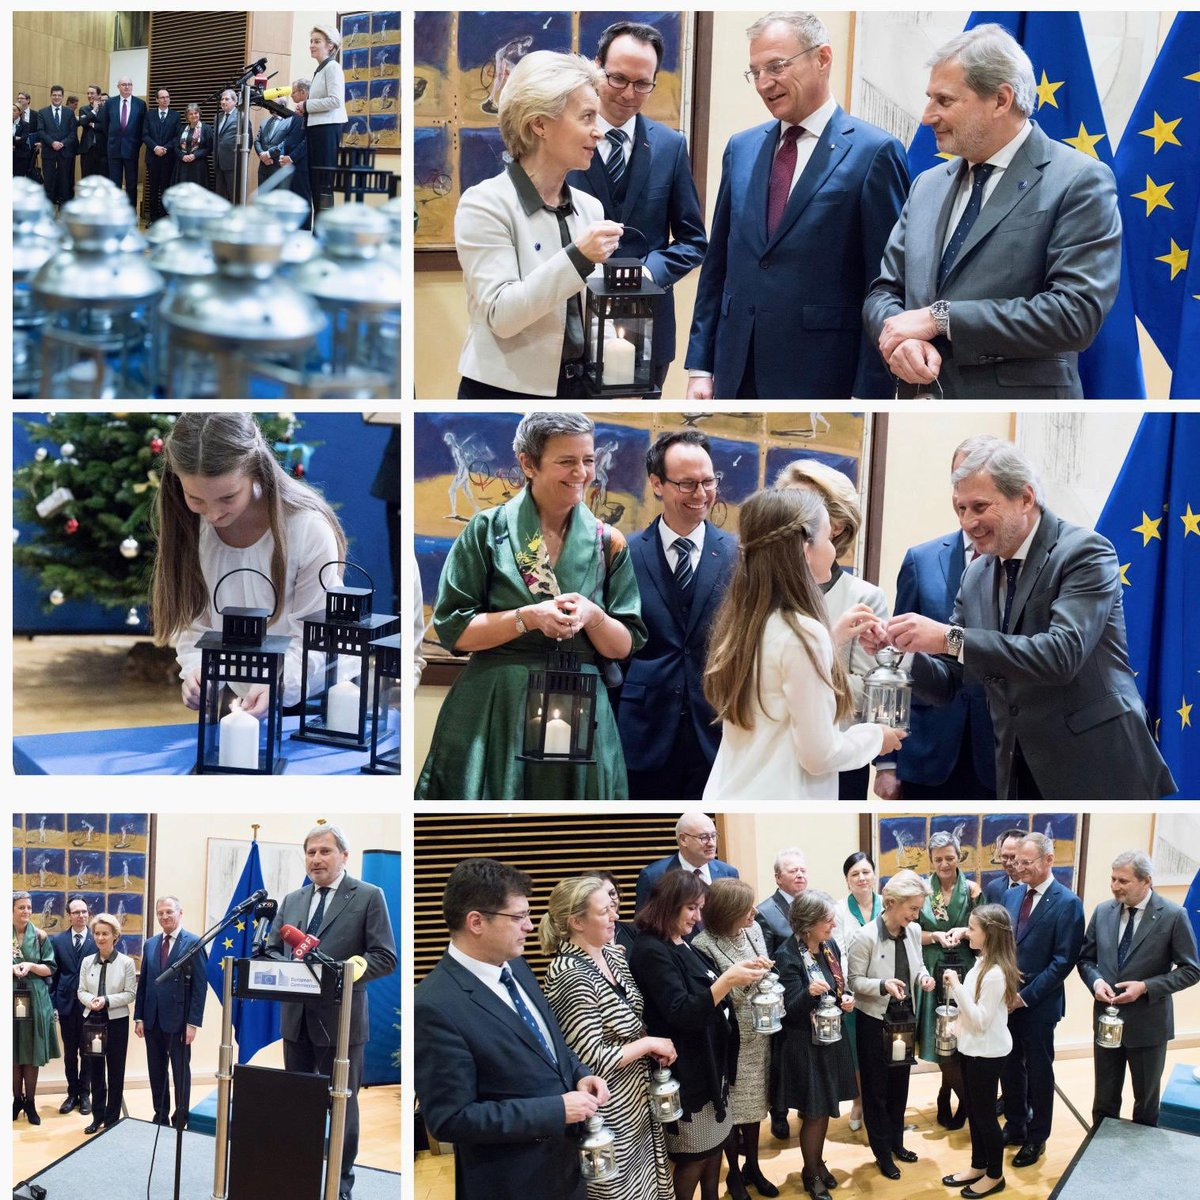 "Bringing the #Christmas spirit to the heart of #Europe: Welcoming the ""Light of Peace"" with President @vonderleyen & @EU_Commission colleagues in #Brussels. Thank you to #UpperAustria governor T. Stelzer & @ORF for this annual tradition. May the light shine bright in 2020!pic.twitter.com/SUpgotLAhY"